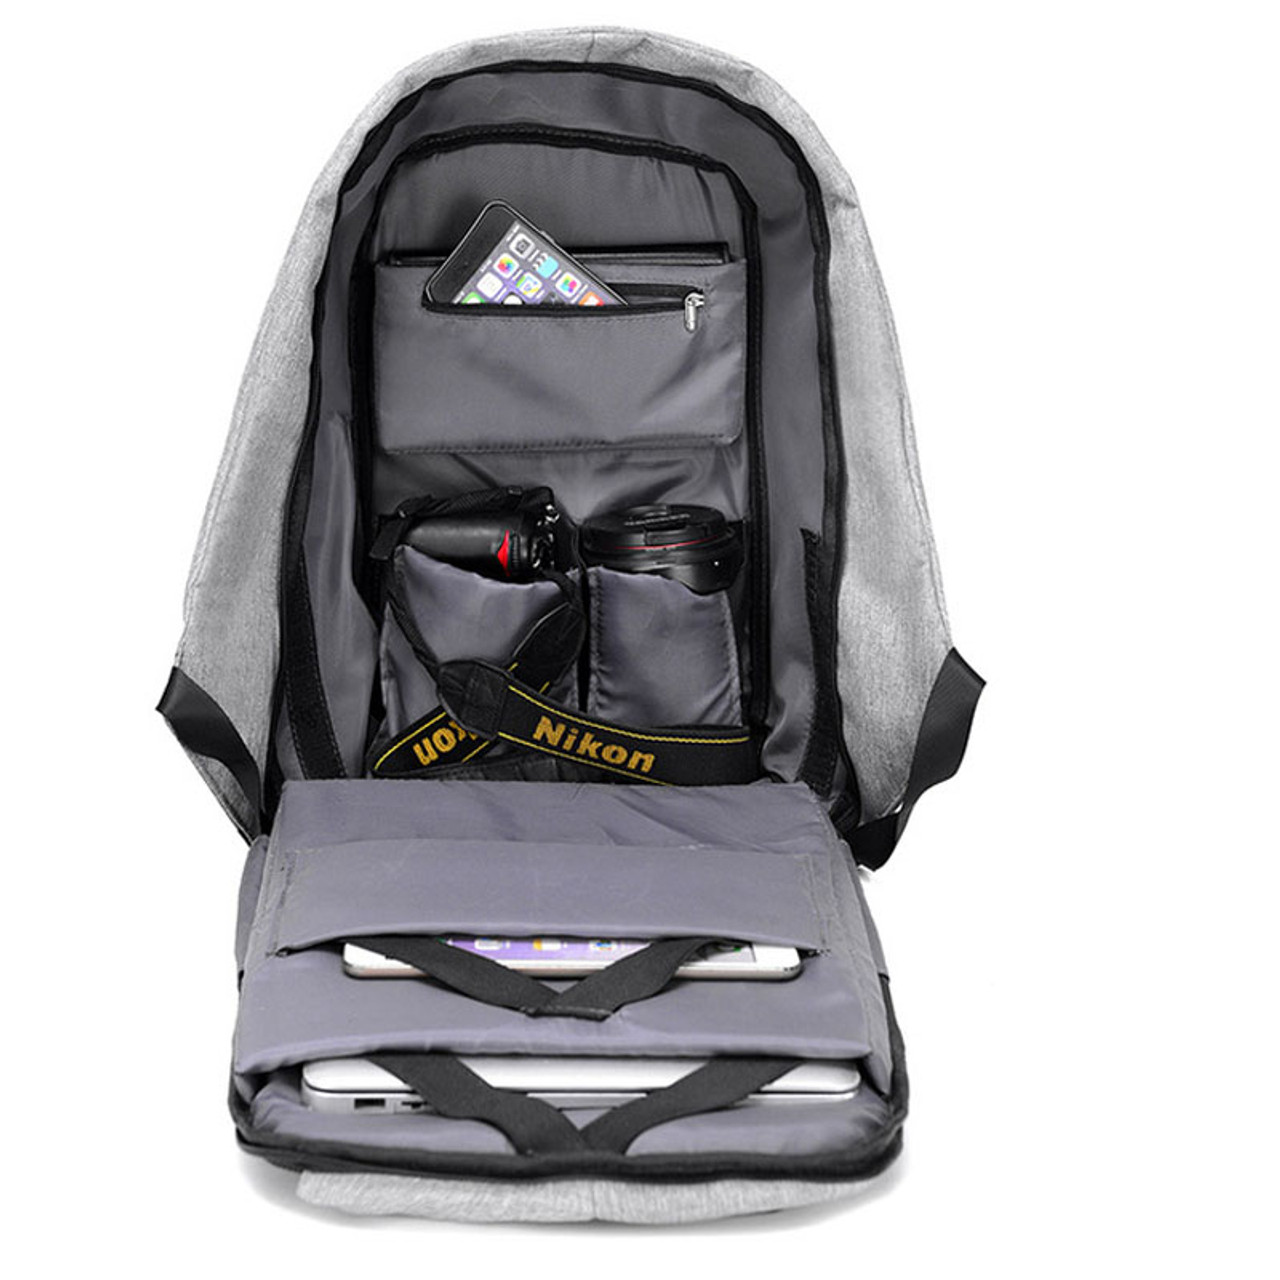 26ce6f97e22 ... 15 inch Laptop Backpack USB Charging Anti Theft Backpack Men Travel  Backpack Waterproof School Bag bobby ...